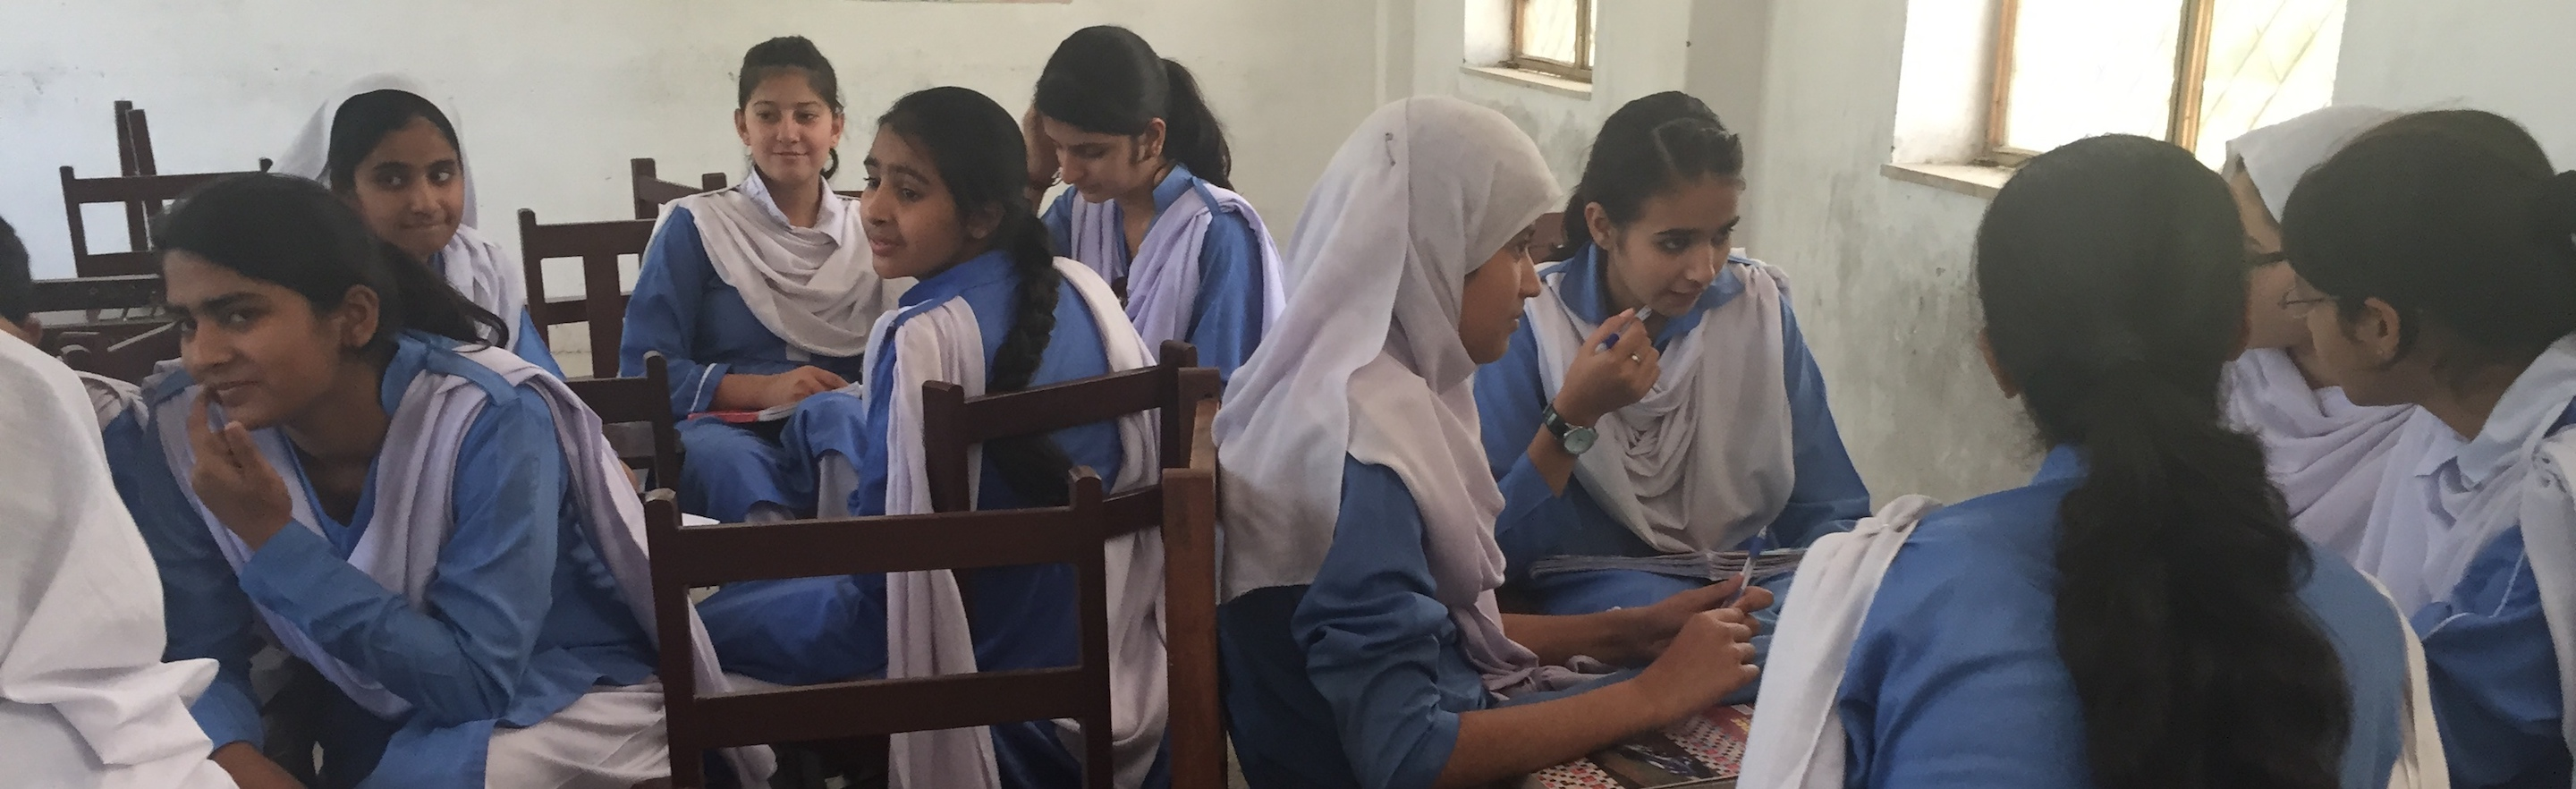 pakistani girls learning in a class